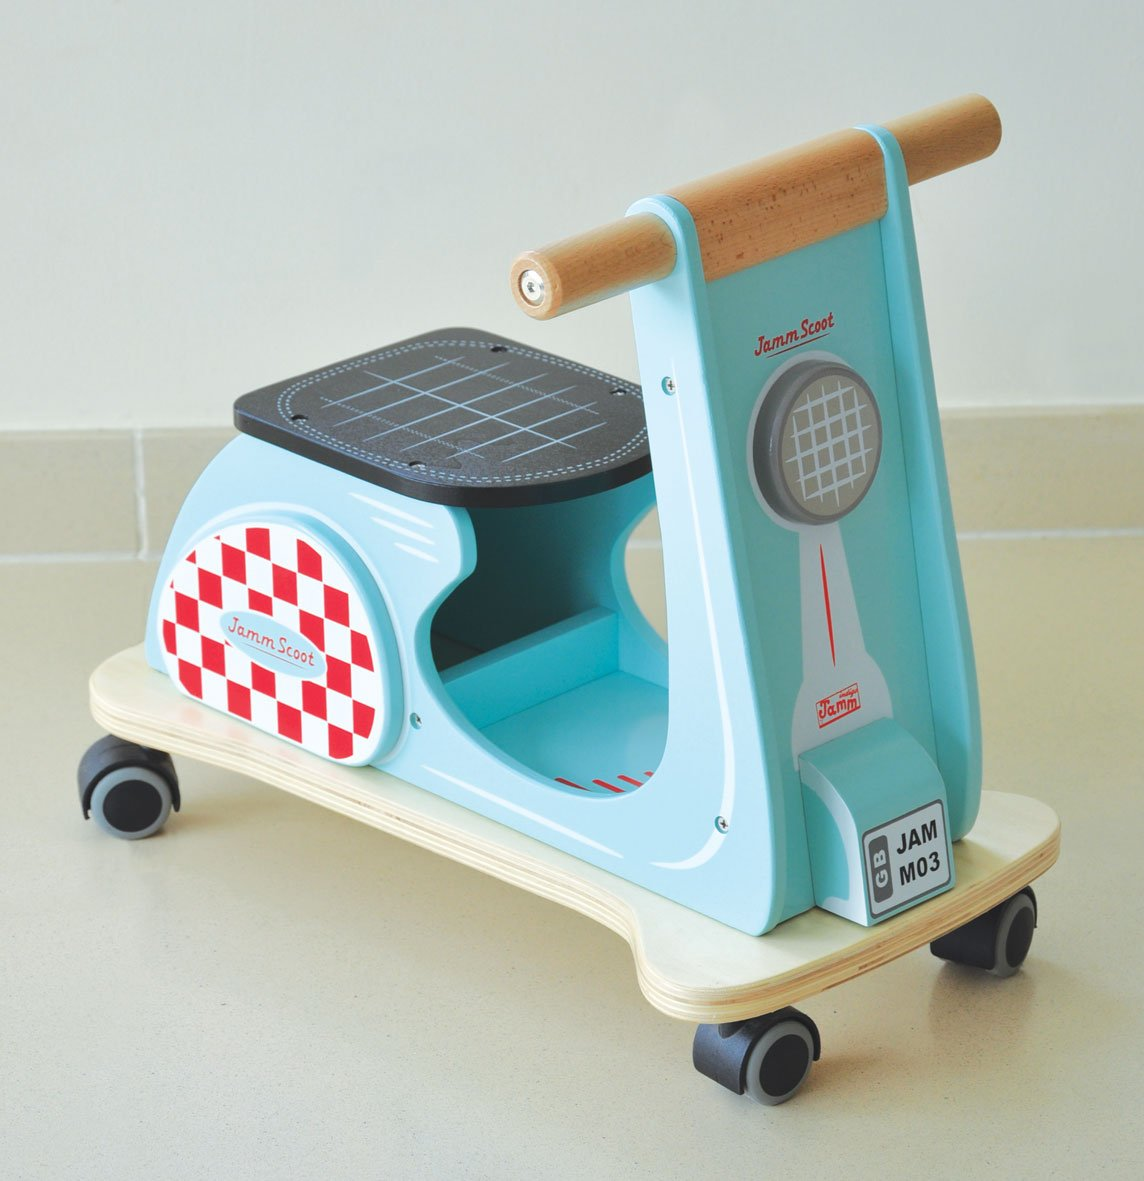 Indigo Jamm Wooden Jamm Scoot, Toy Ride-On Scooter with Retro Classic Design for Children Aged 12 Months Plus – Aqua Racer AIJ075